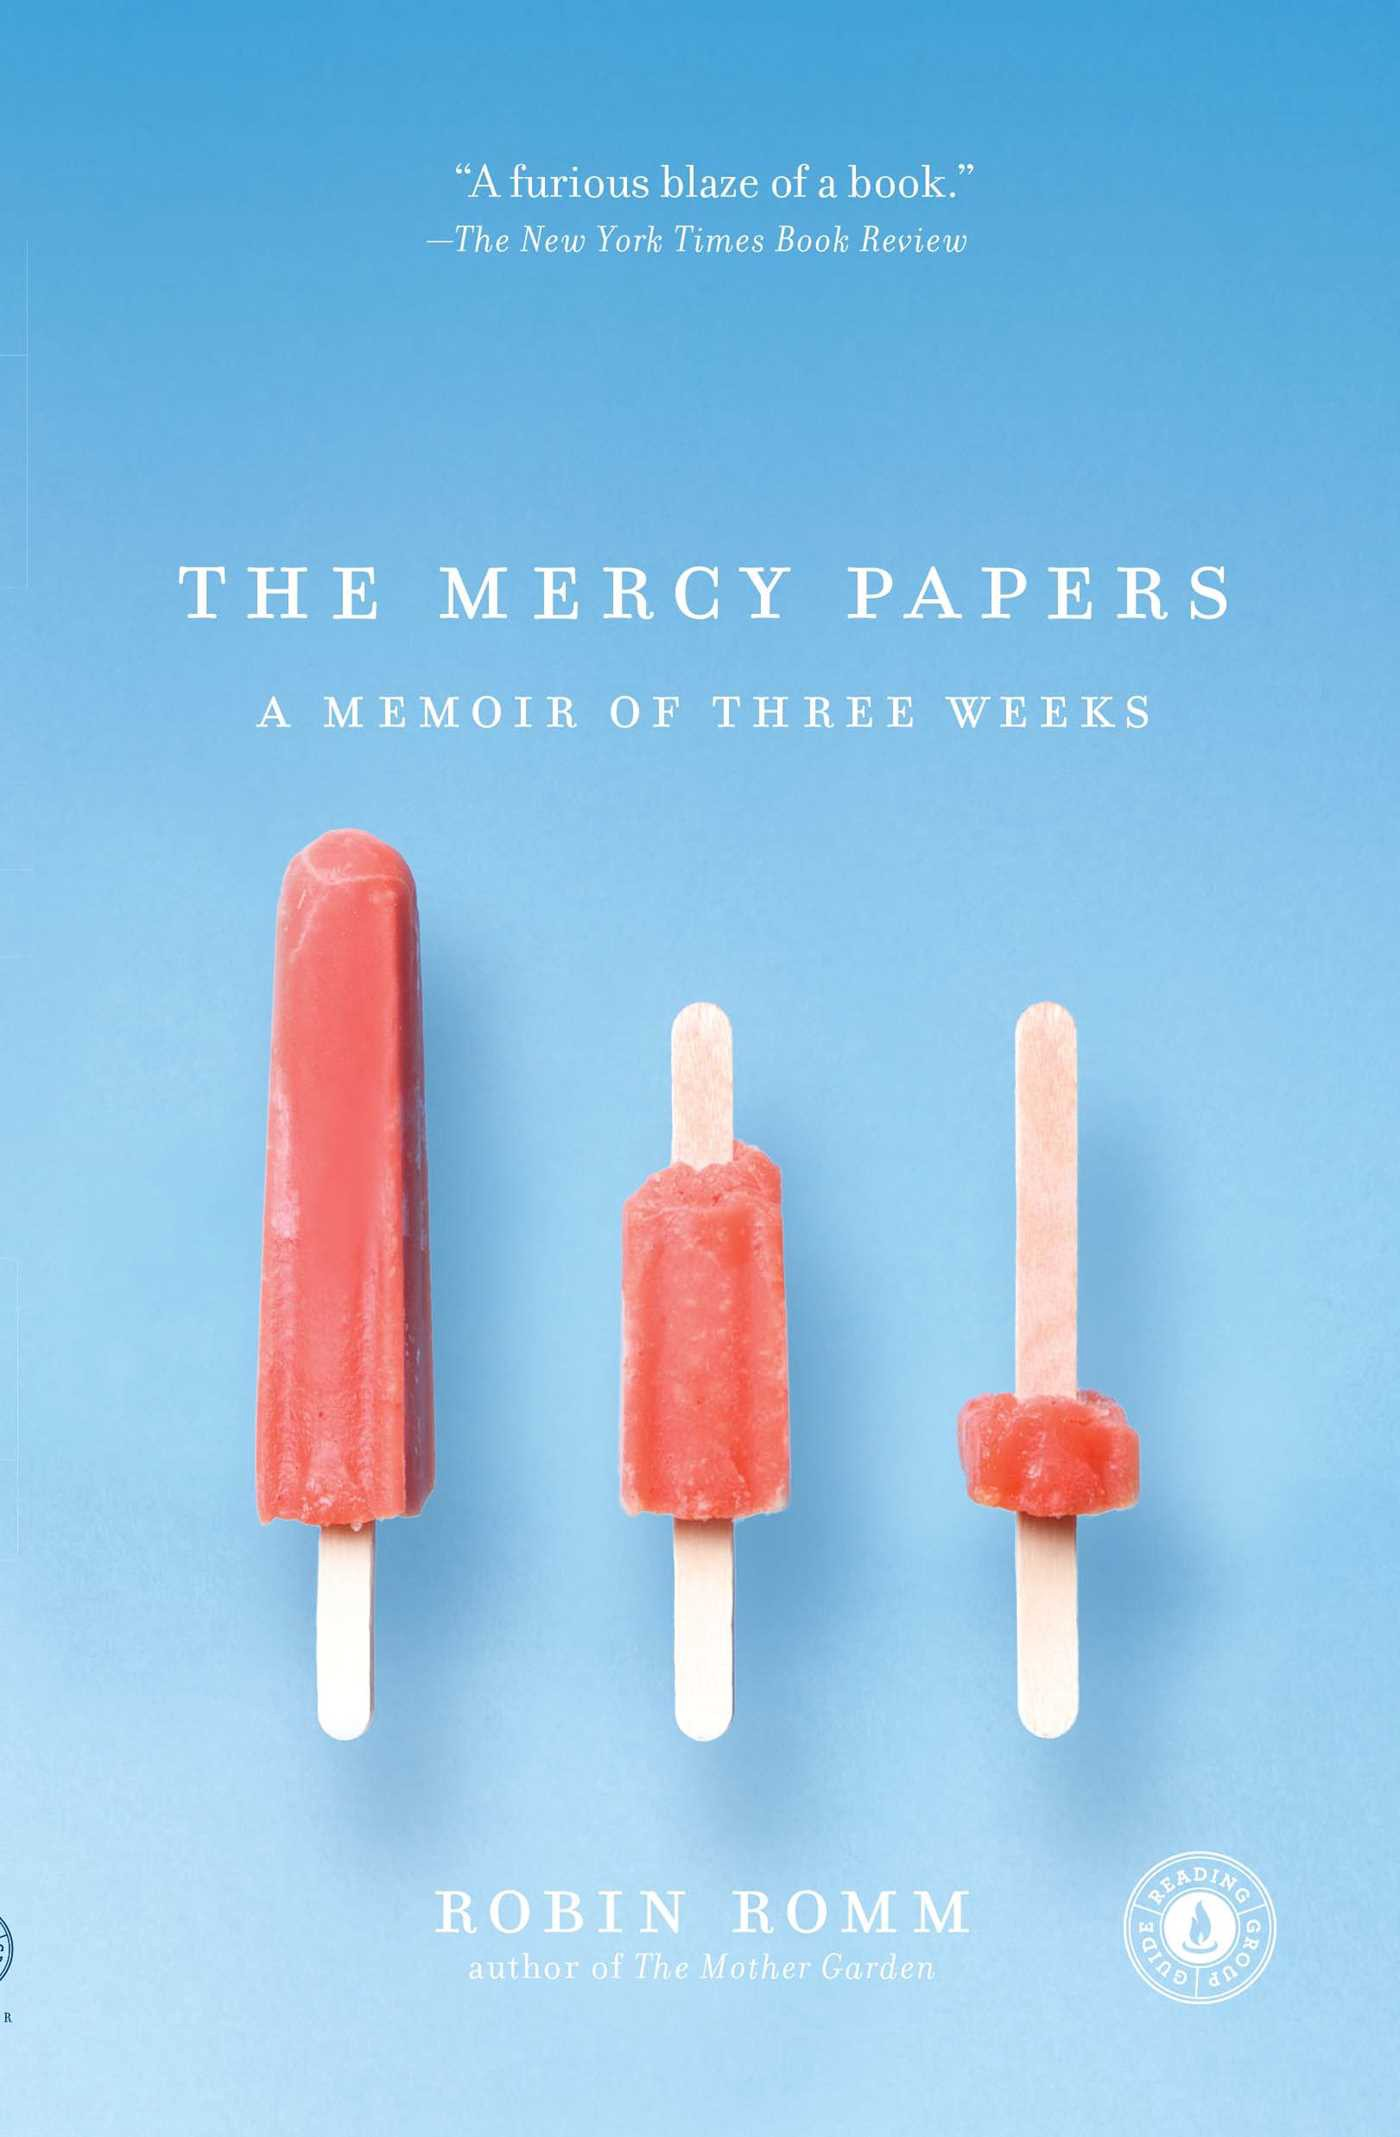 Book cover art for The Mercy Papers by Robin Romm http://kbros.co/2bvVJV2